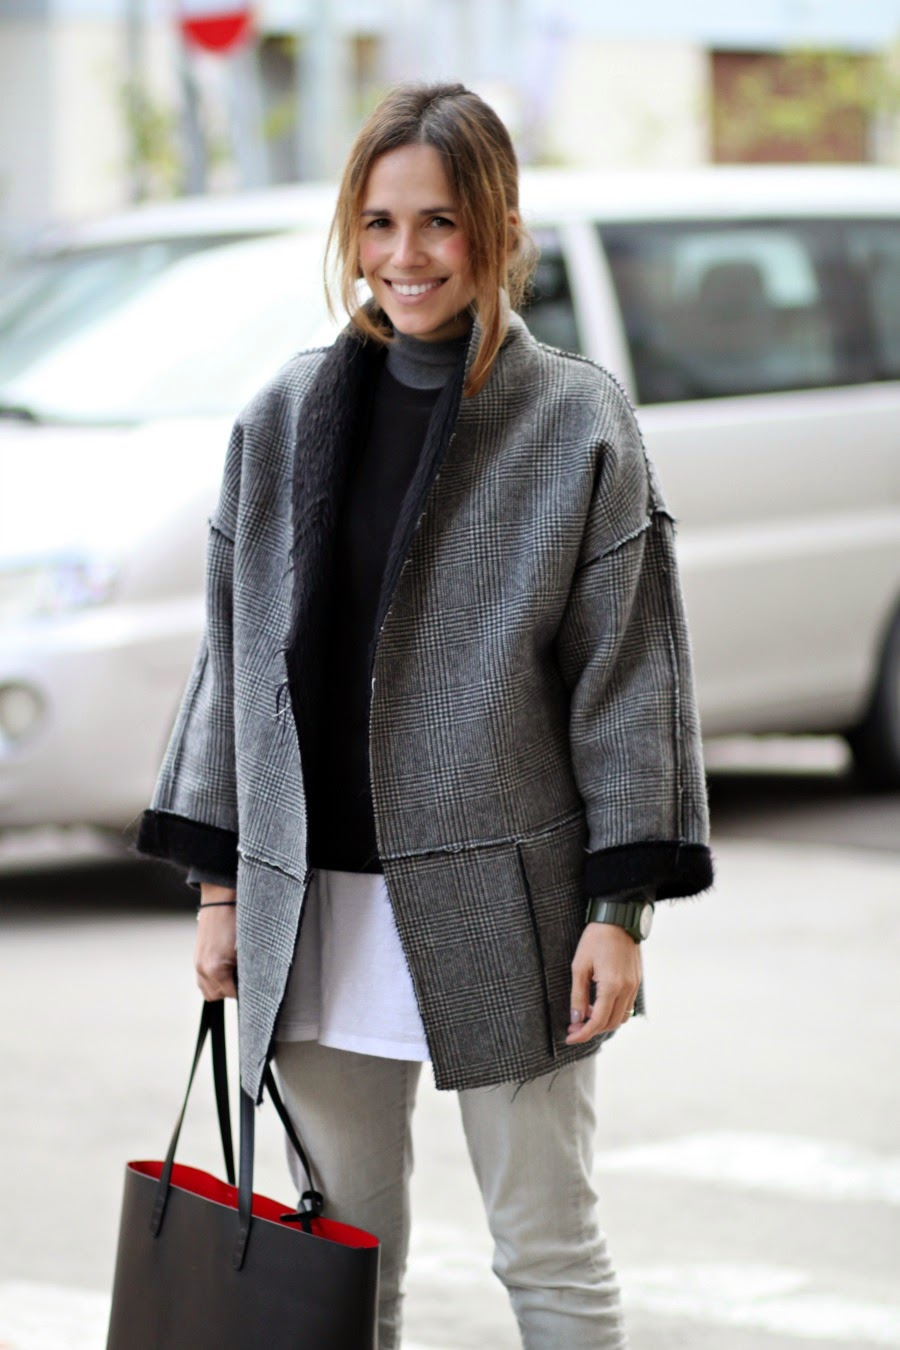 mansurgavriel, ootd, cozylook, zara, turtleneck, winter2015, fashionblog, streetstyle, whatiwore, אופנה, בלוגאופנה, סטייל